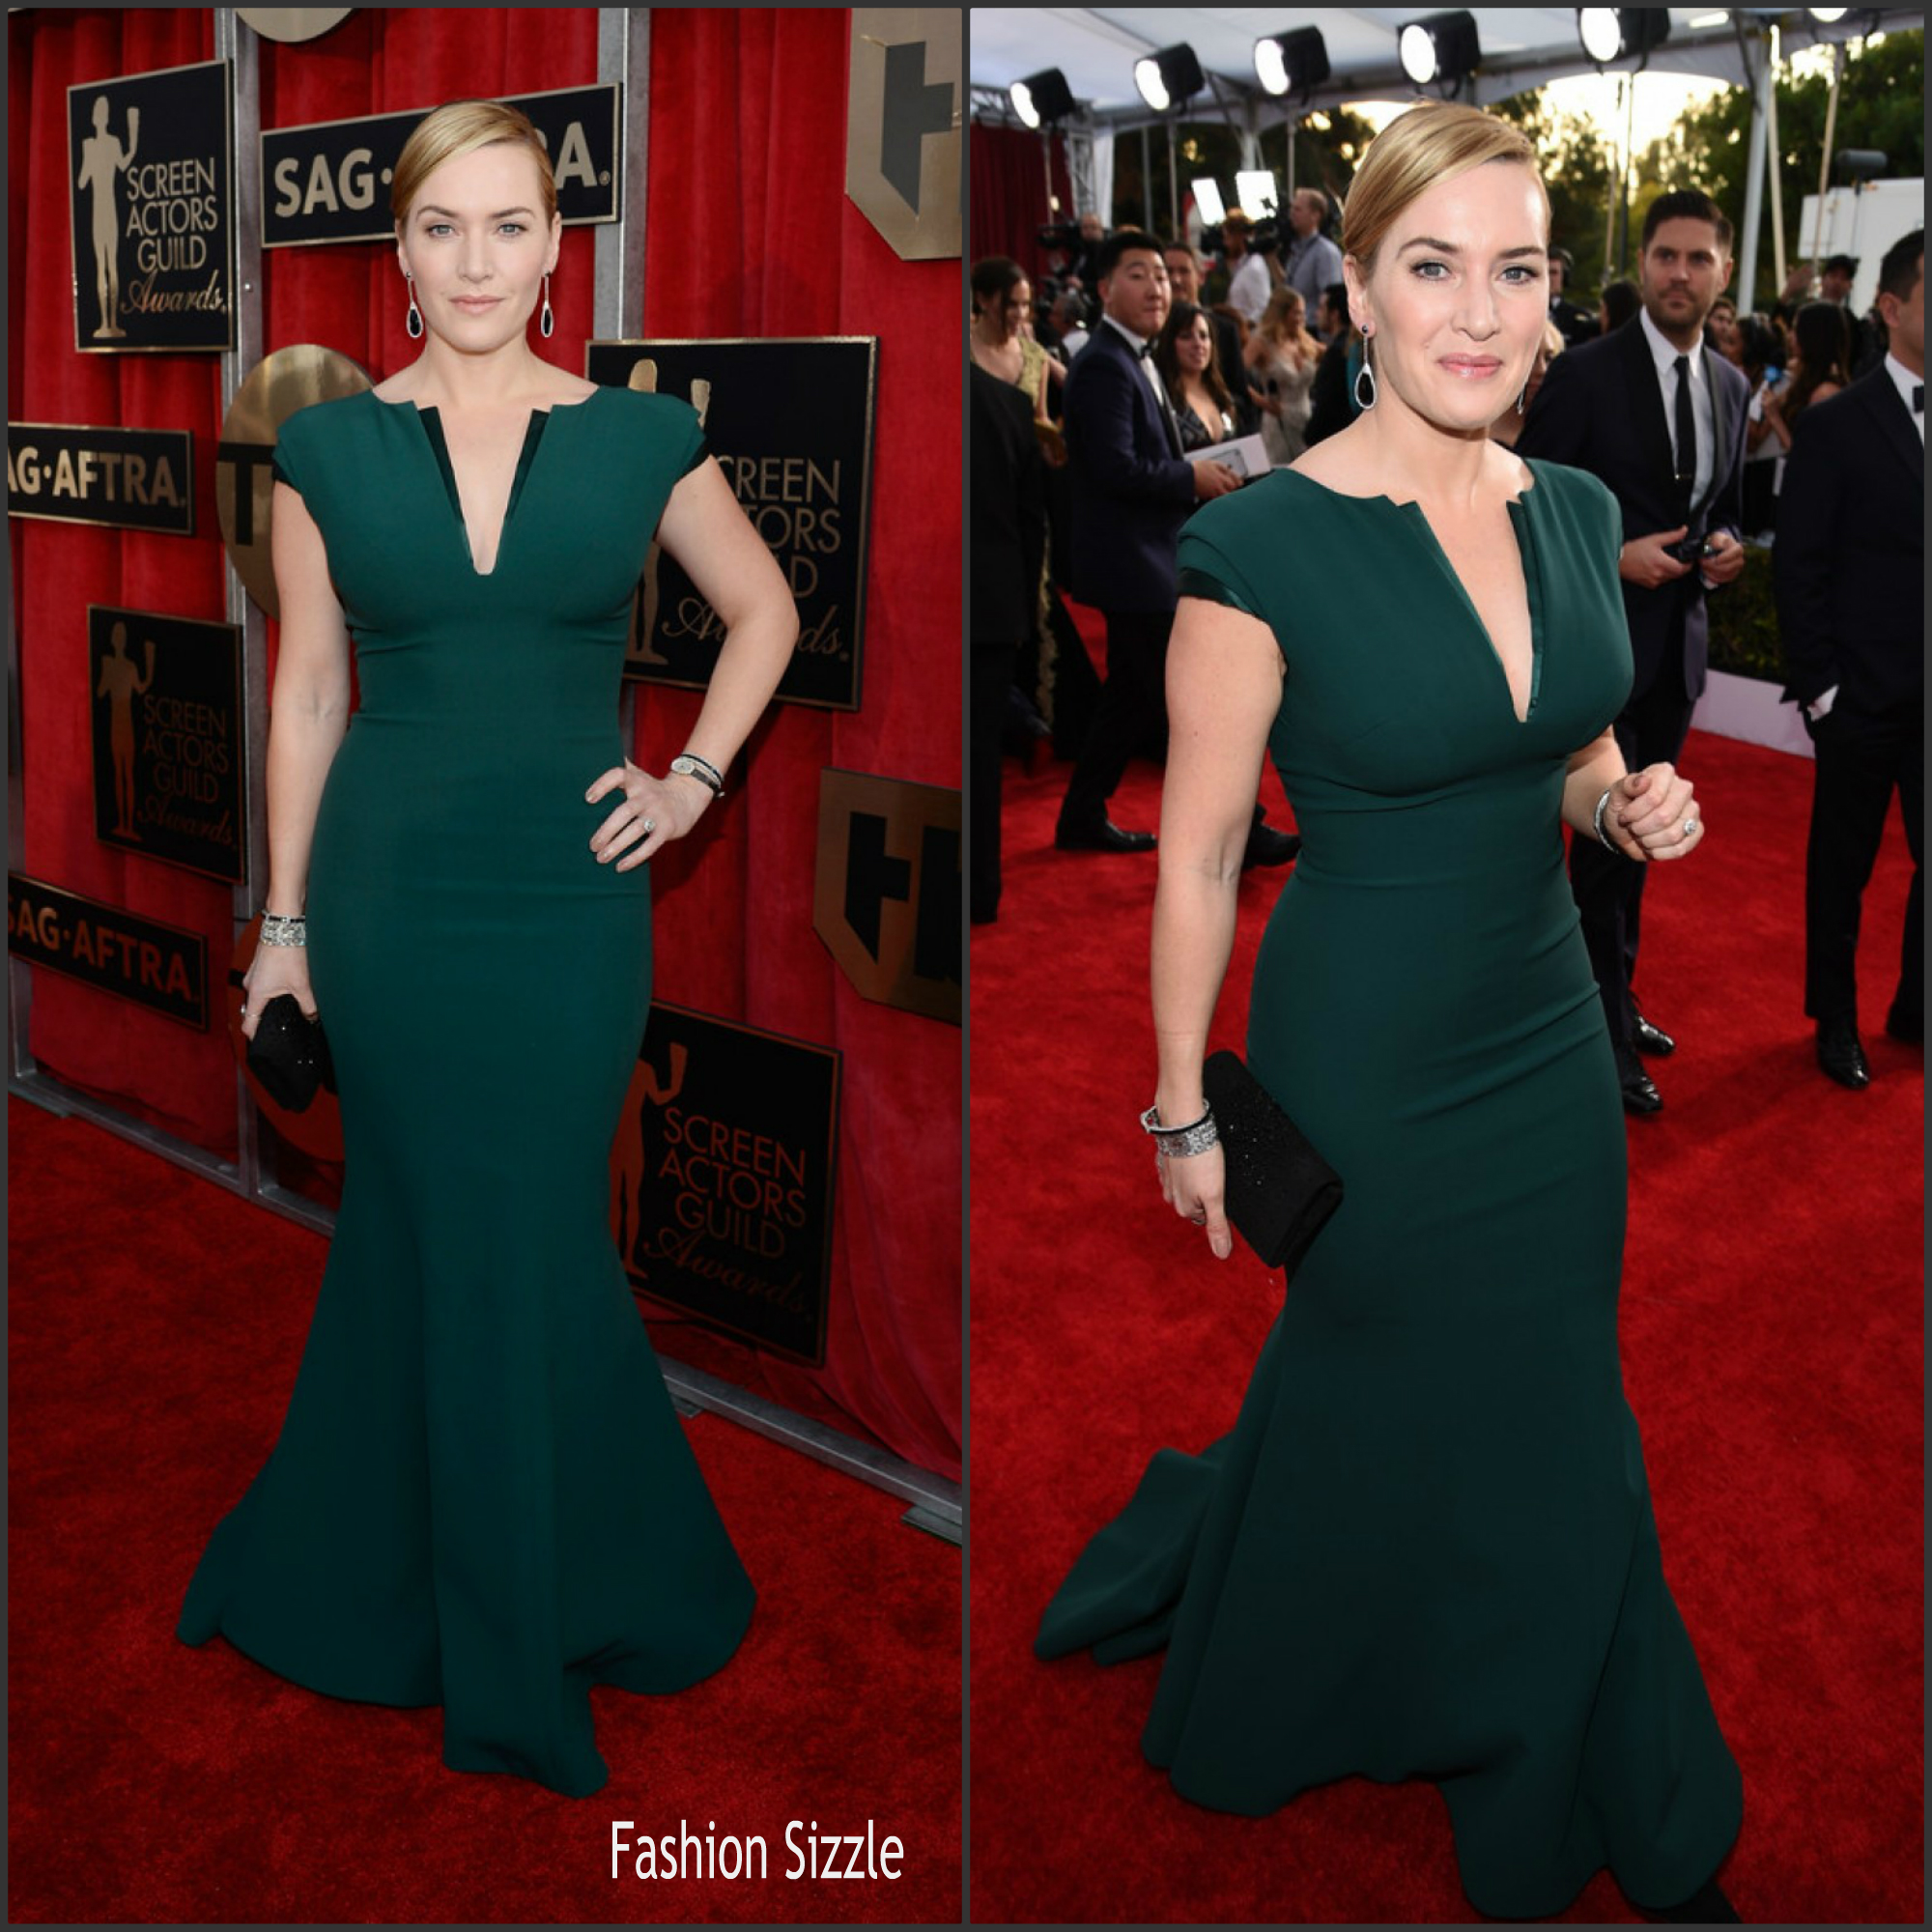 kate-winslet-in-giorgio-armani-2016-screen-actors-guild-awards